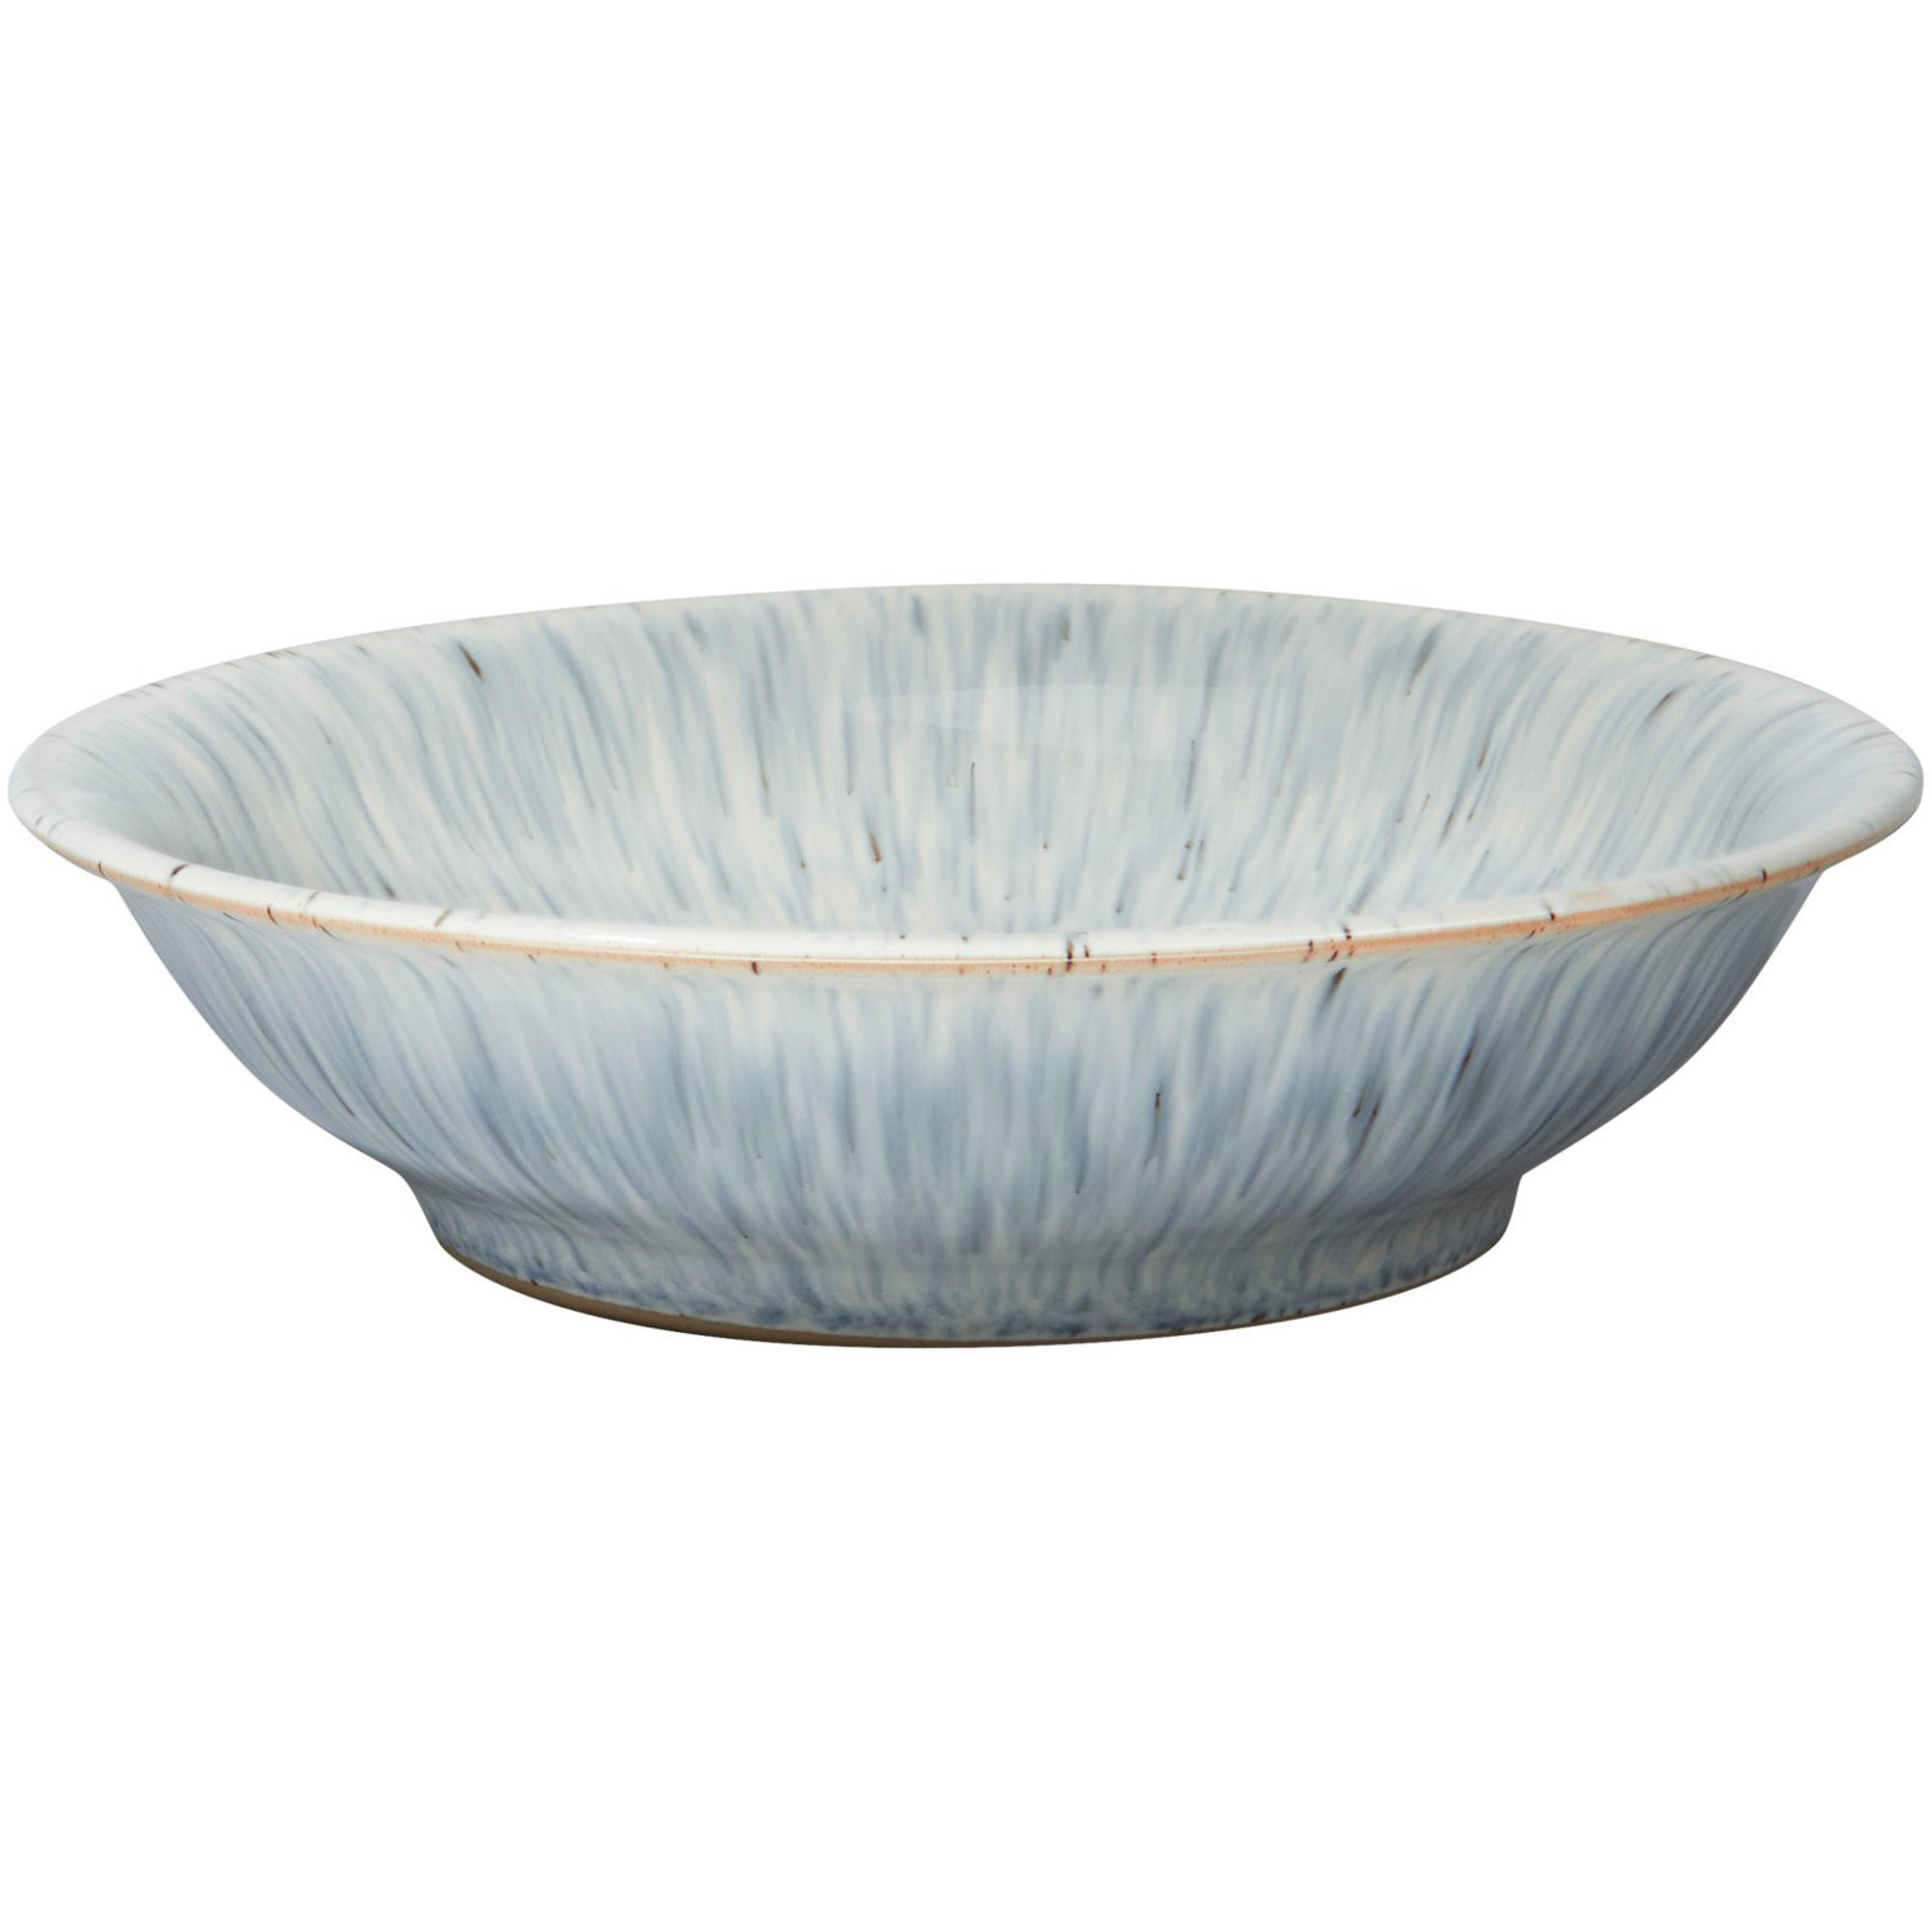 Denby Halo Medium Lågskål 155 cm x 4 cm